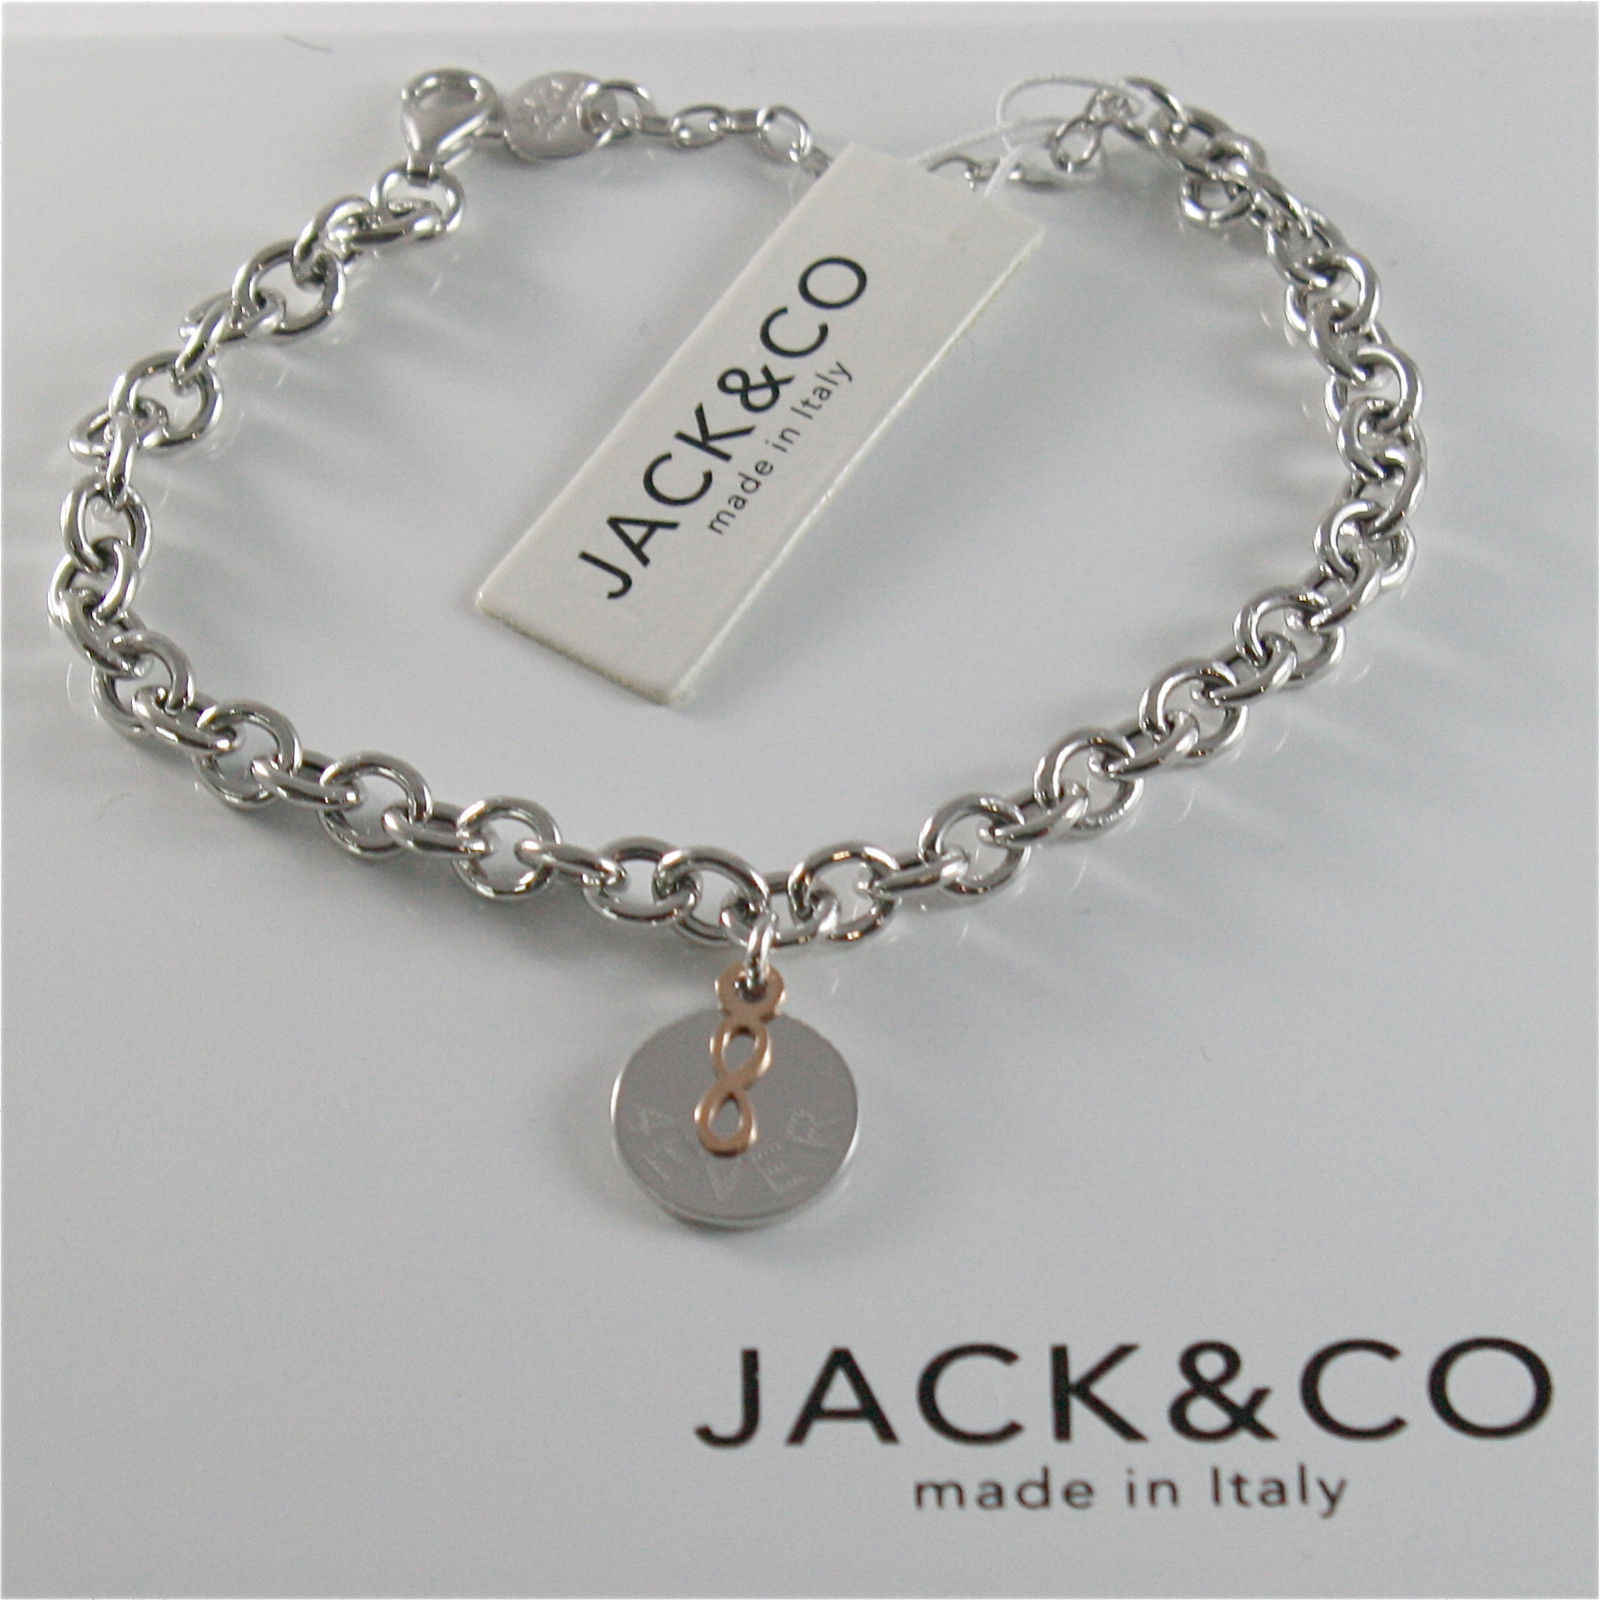 925 RHODIUM SILVER JACK&CO BRACELET WITH 9KT ROSE GOLD INFINITY  MADE IN ITALY